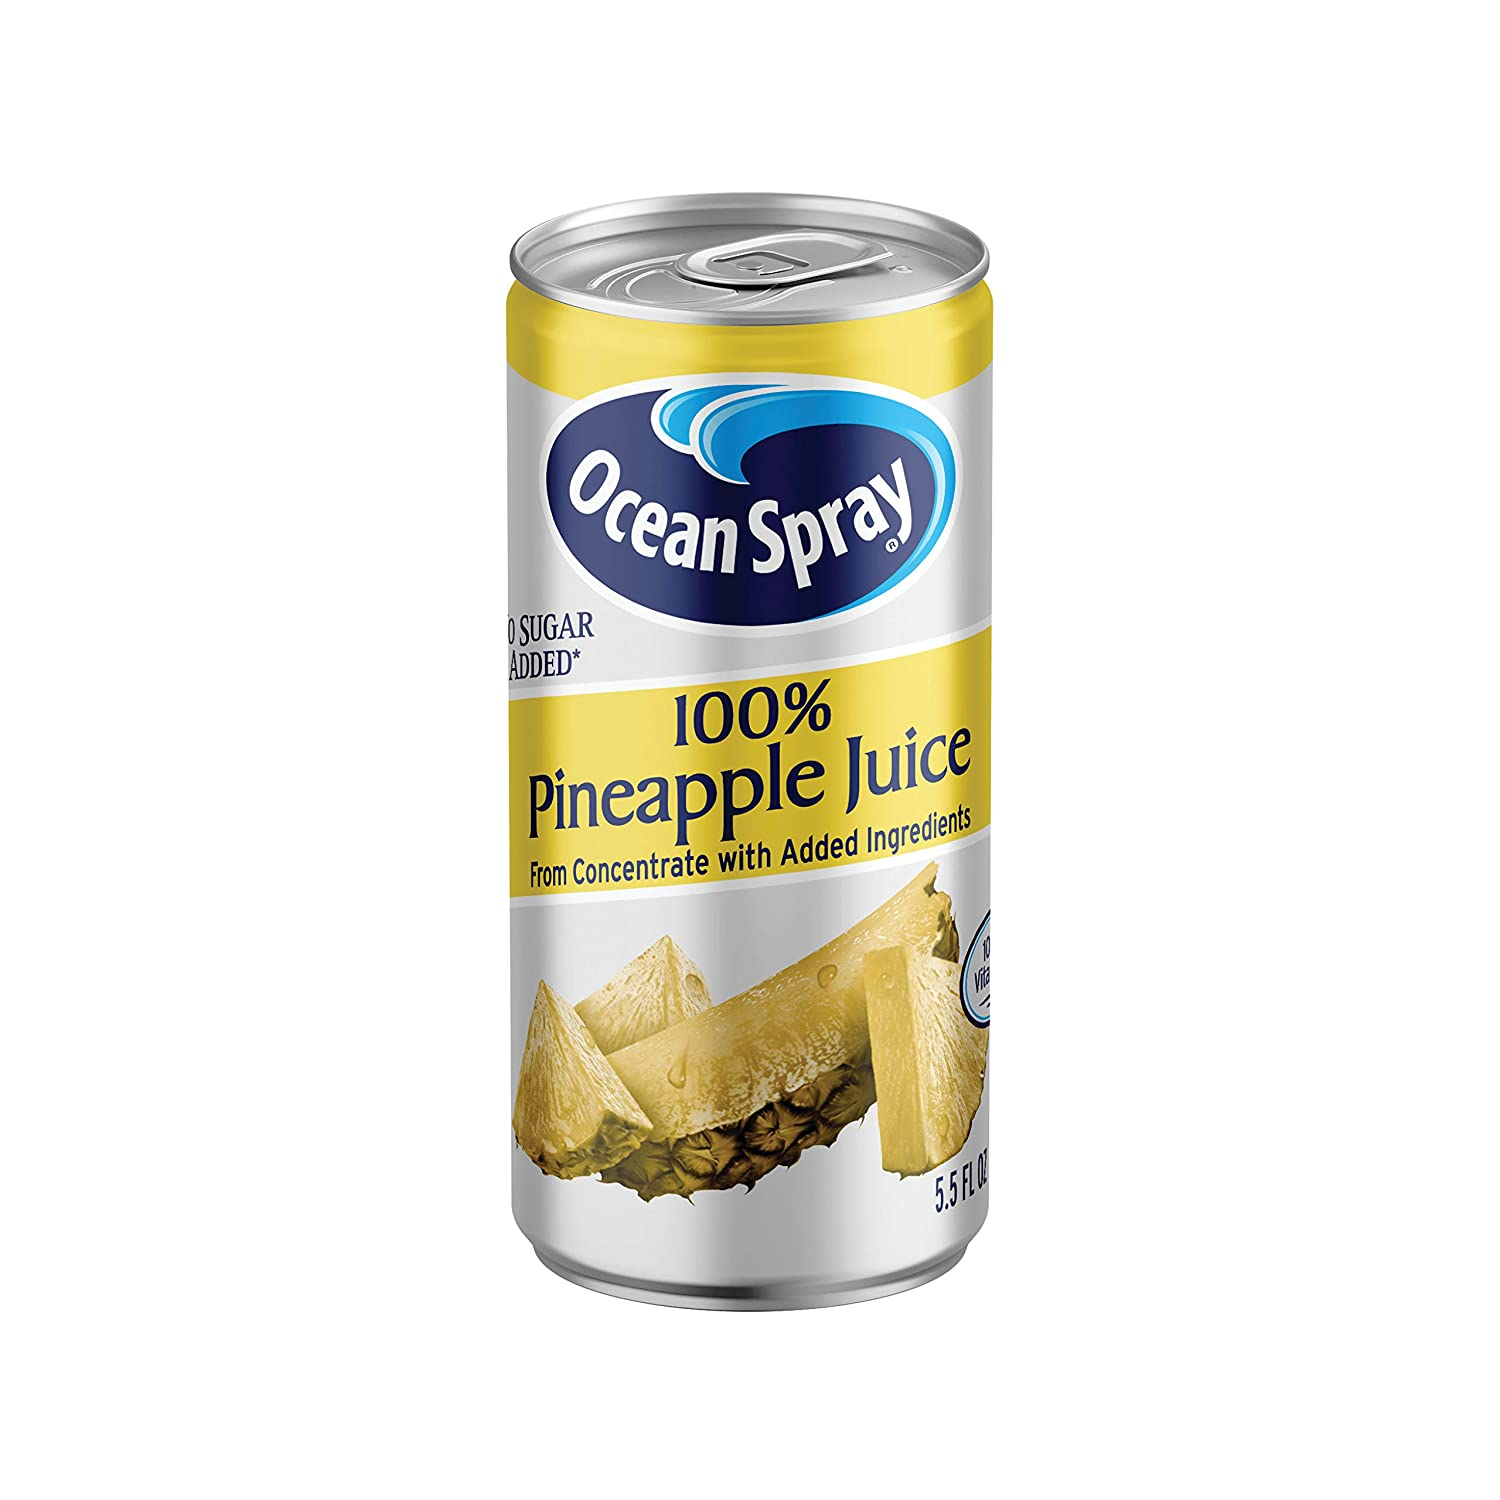 Ocean Spray 100% Pineapple Juice Mini Cans, 5.5 Ounce (Pack of 48)